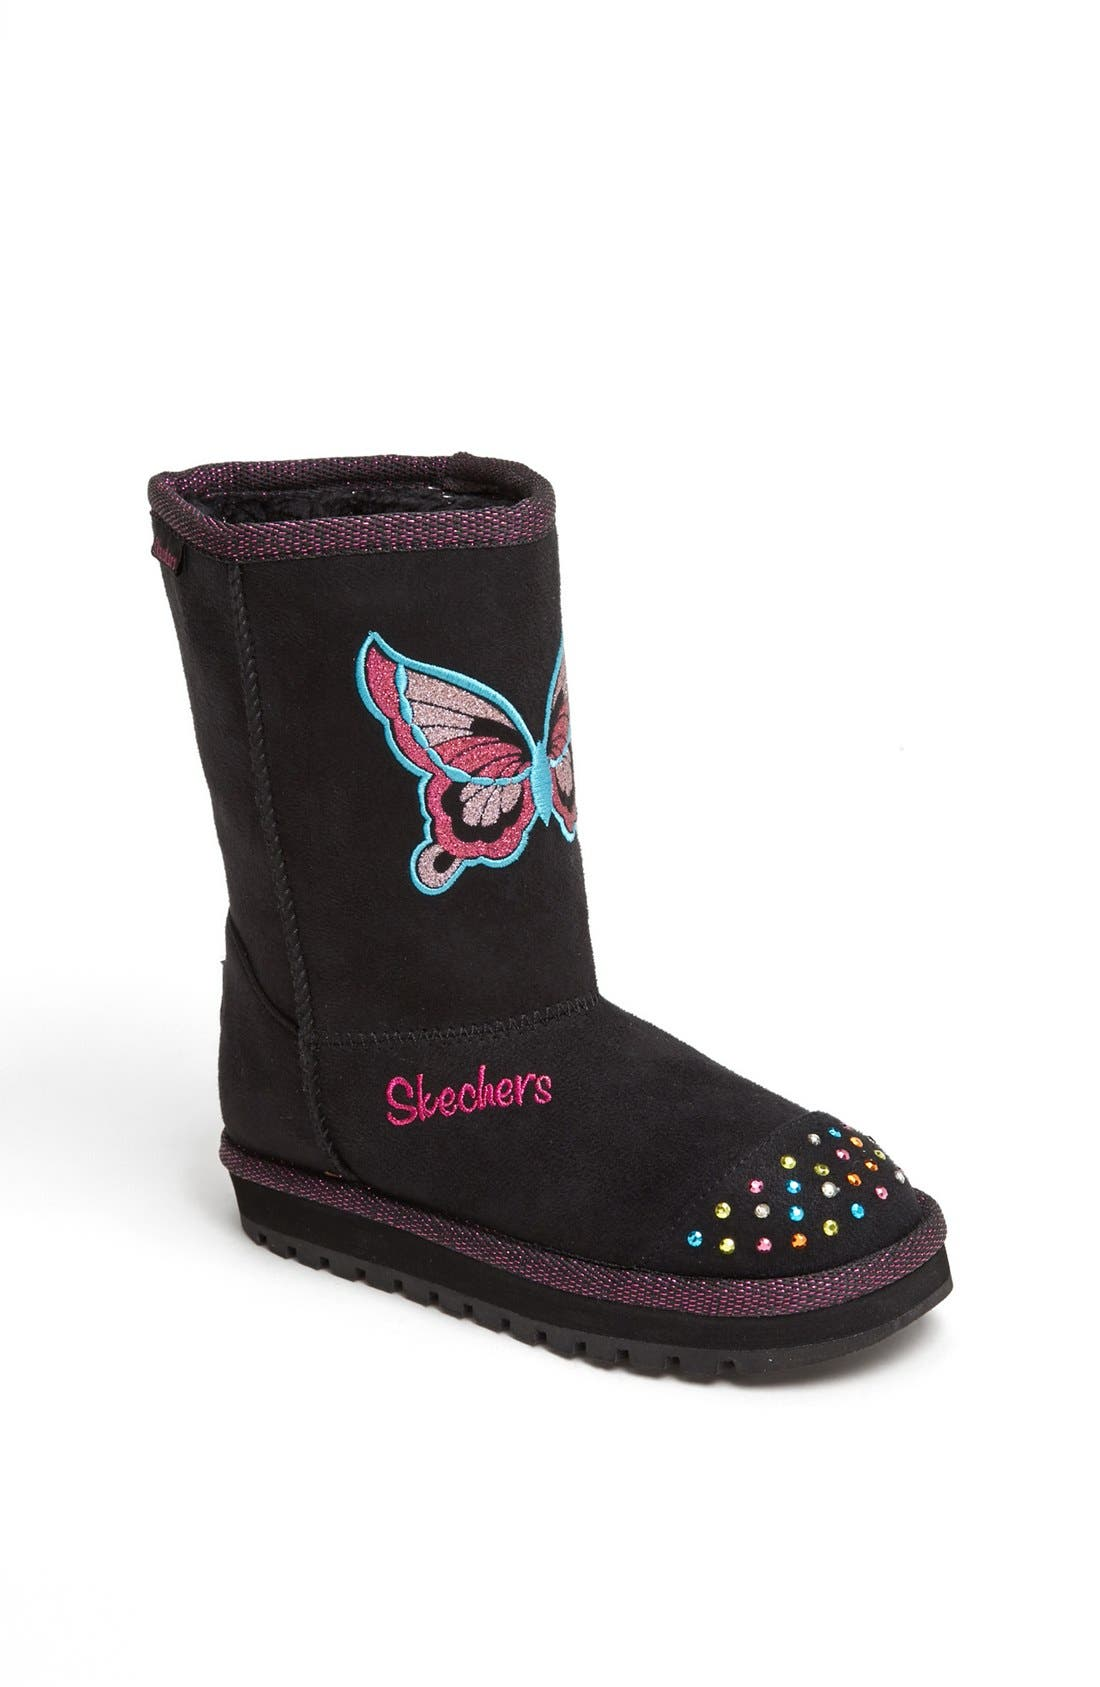 Main Image - SKECHERS 'Keepsakes' Light Up Boot (Walker, Toddler, Little Kid)